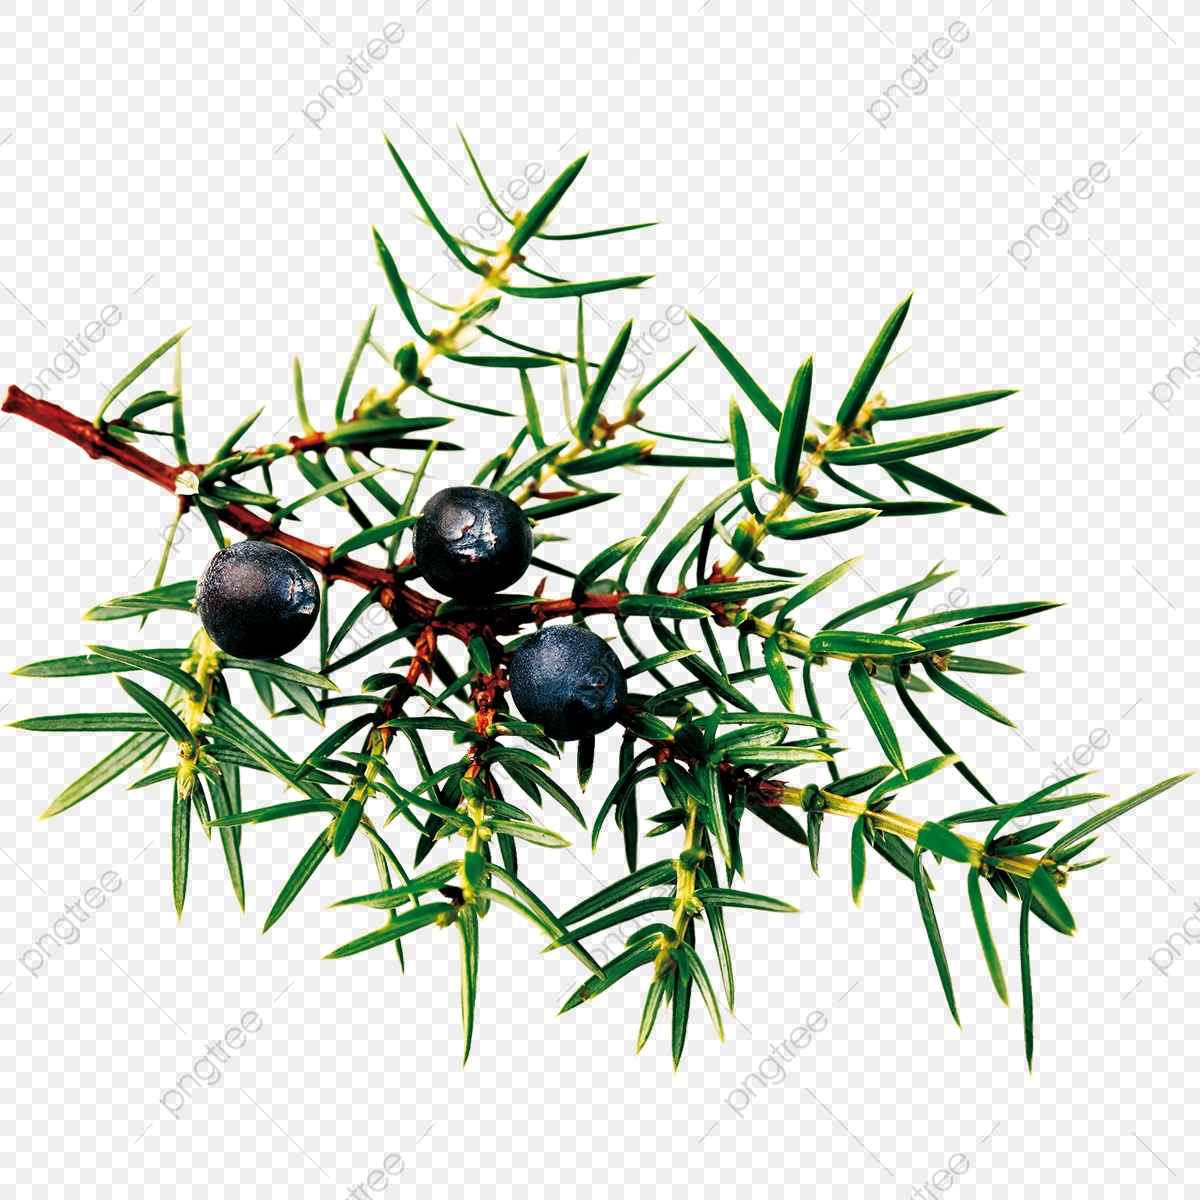 Juniper, Eps, Tree PNG and Vector with Transparent Background for